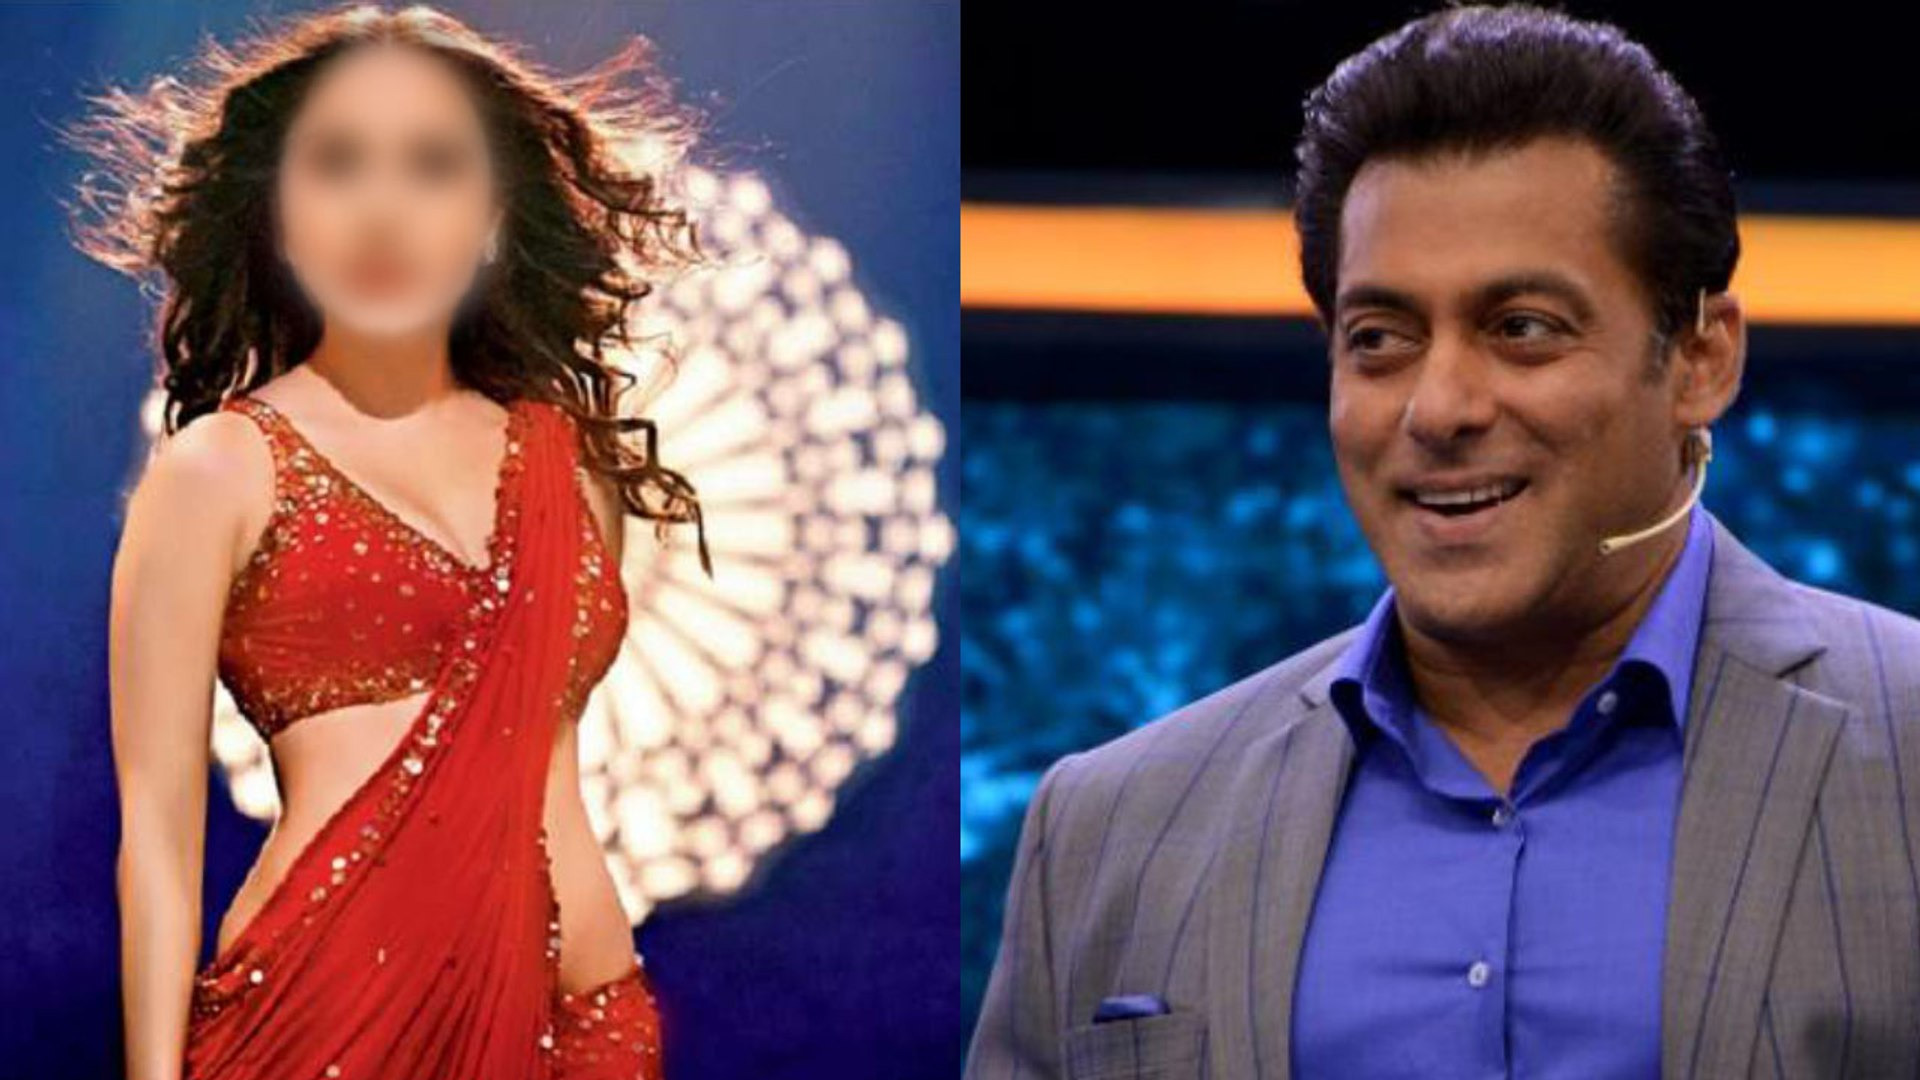 Salman Khan to produce small town wedding drama with This Bollywood actress; Find here   FilmiBeat